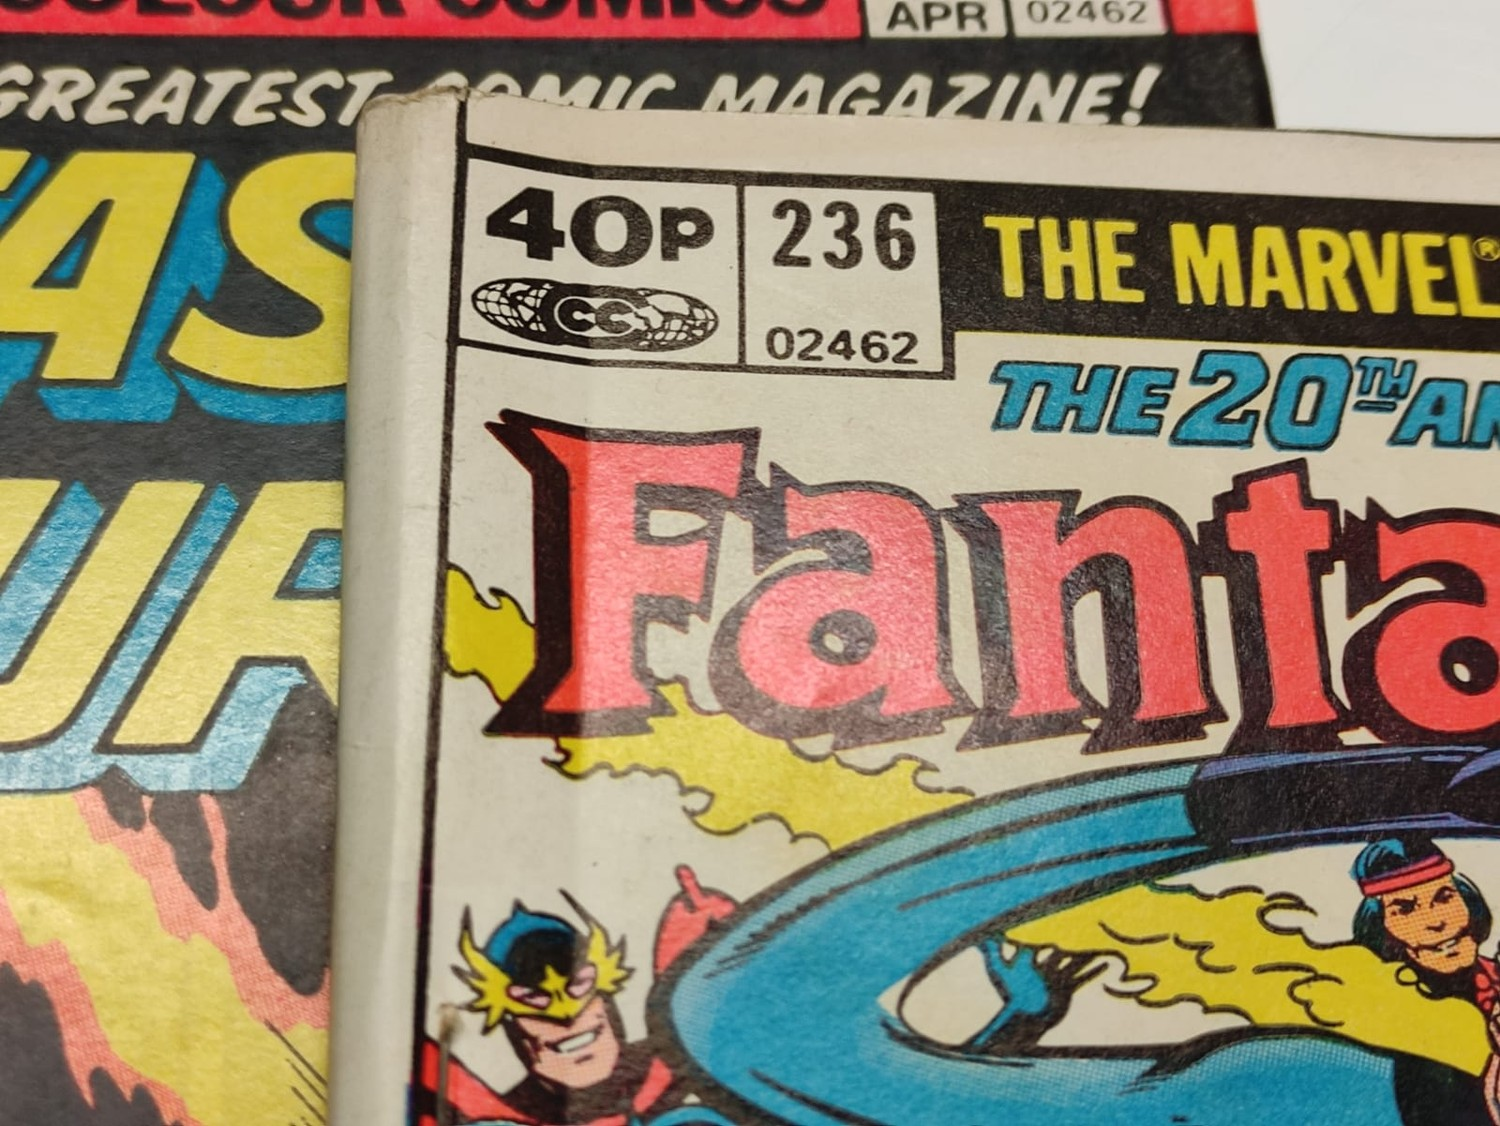 30x Marvel Fantastic four mid 1970s editions. Used, in good condition. - Image 13 of 17